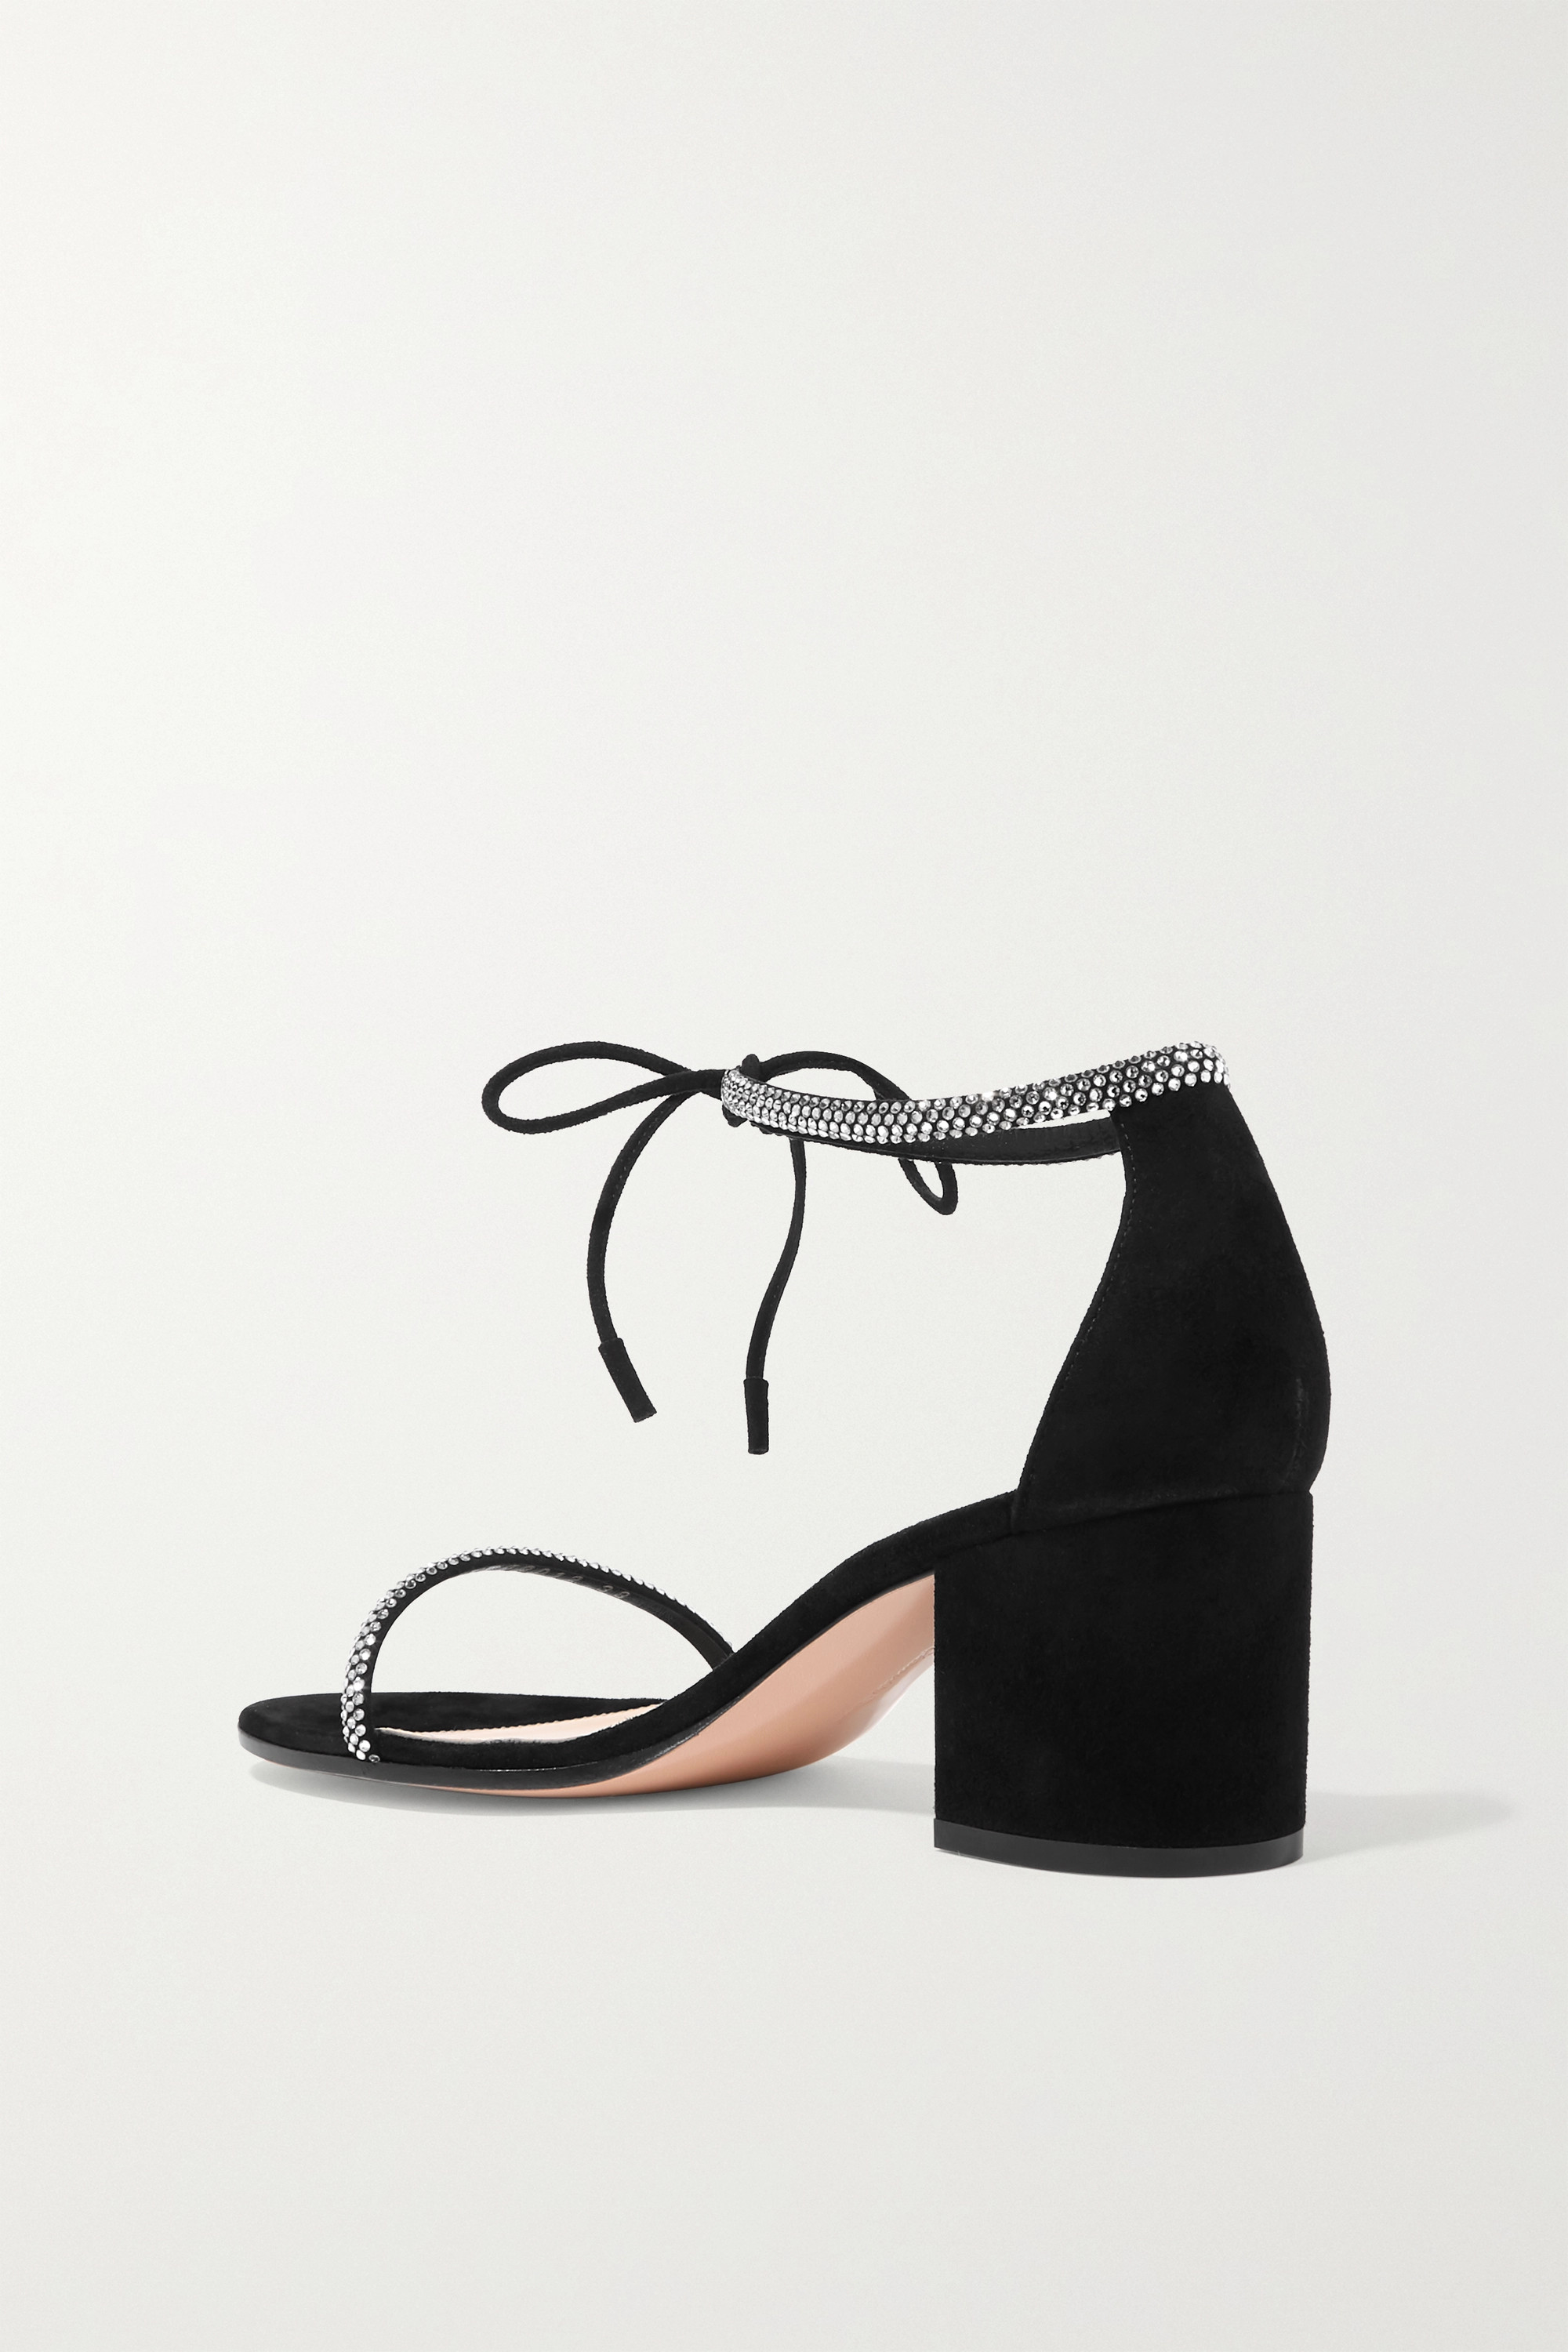 Gianvito Rossi 60 crystal-embellished suede sandals